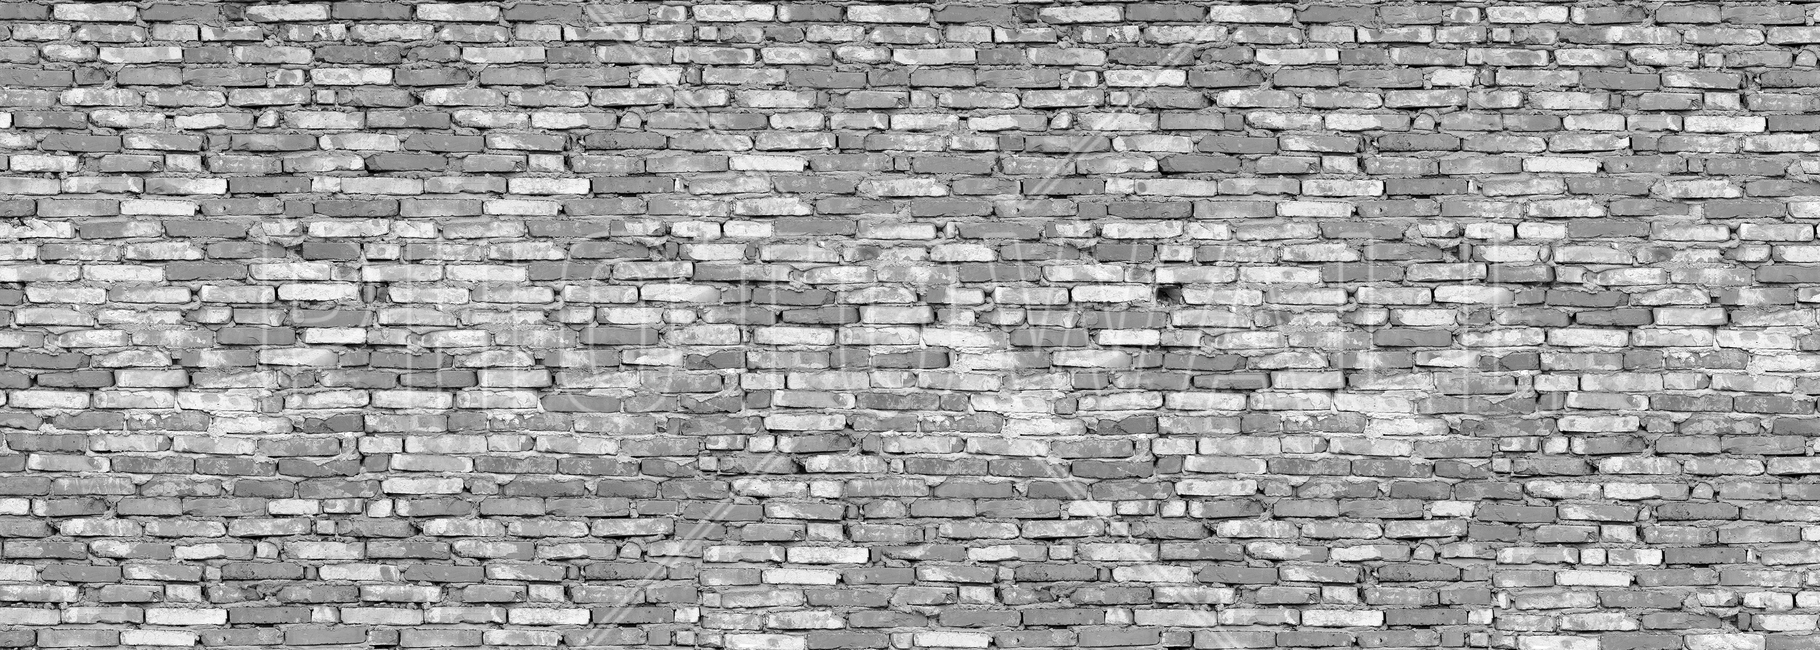 Old Brick Wall - Grey Fototapeter & Tapeter 100 x 100 cm